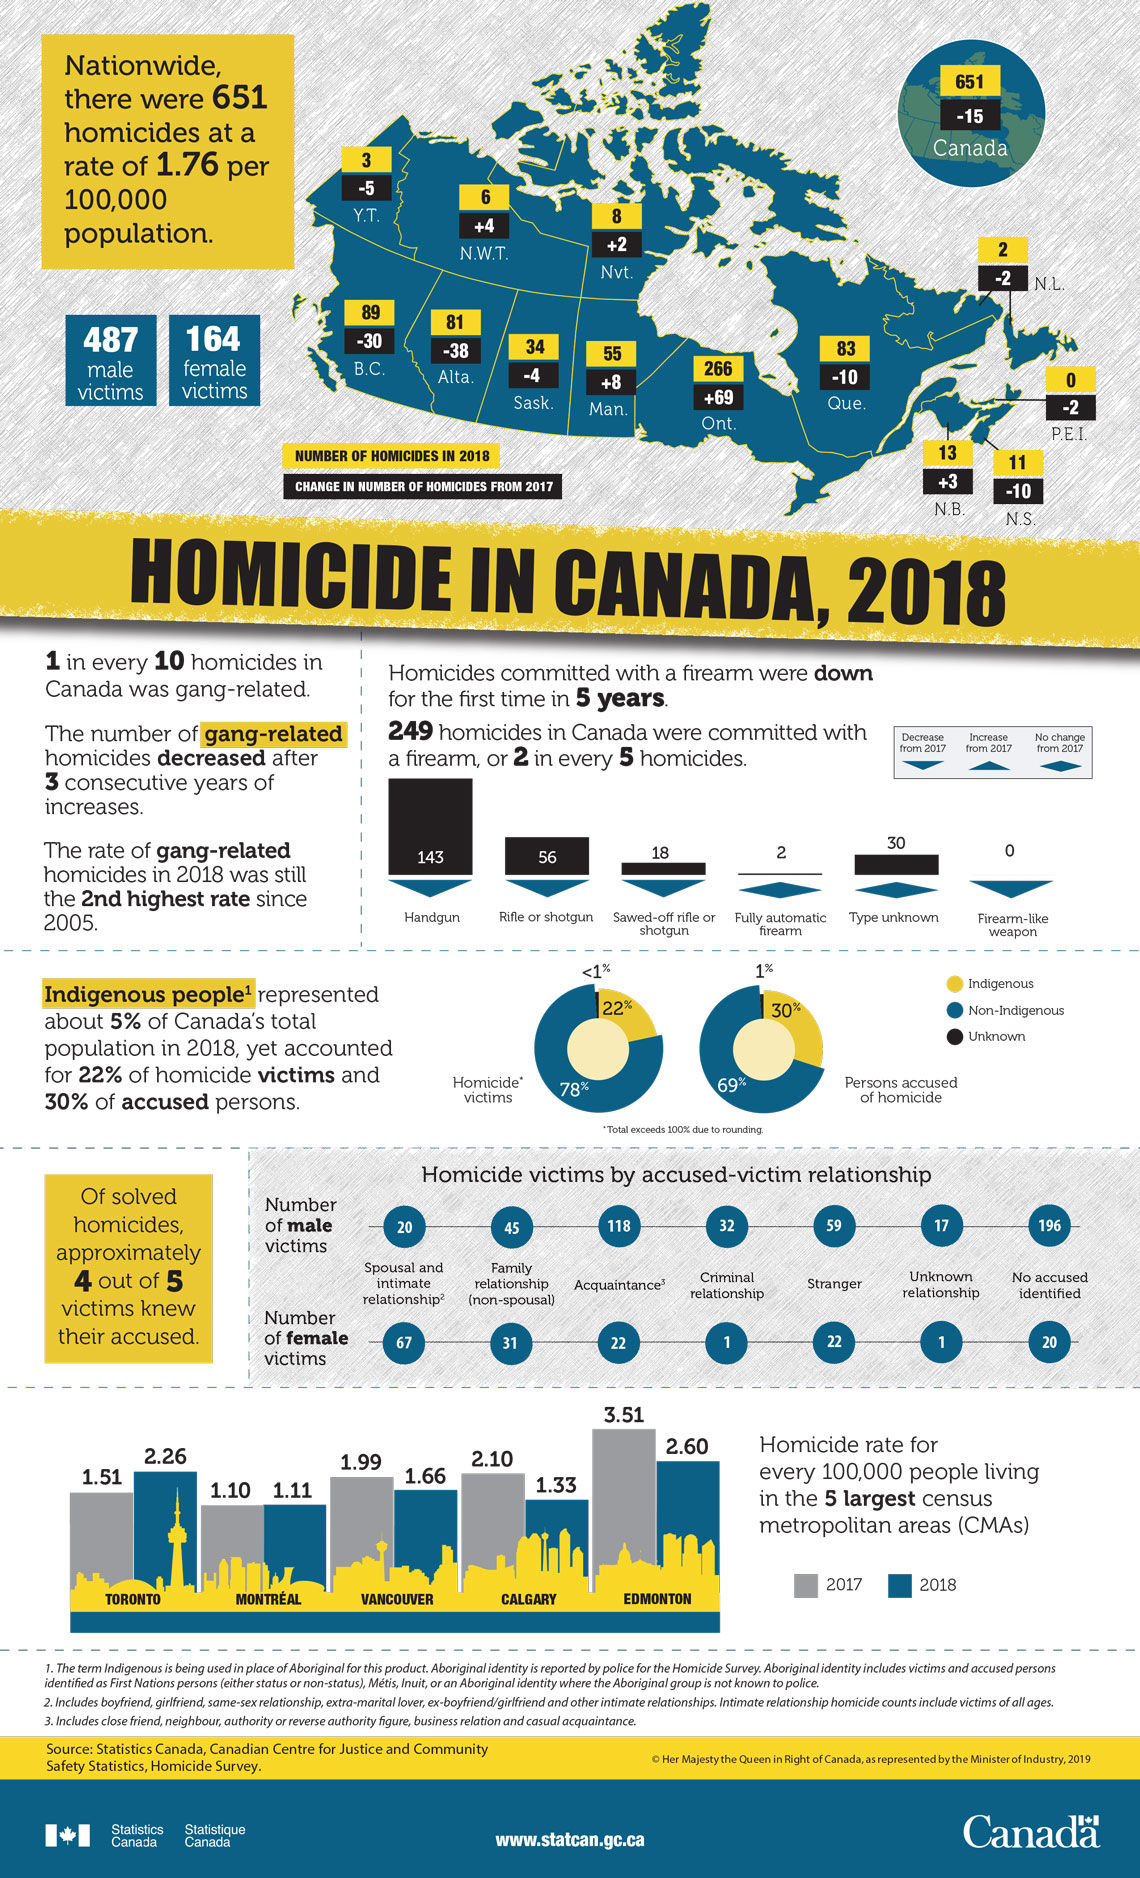 Infographic: Homicide in Canada, 2018